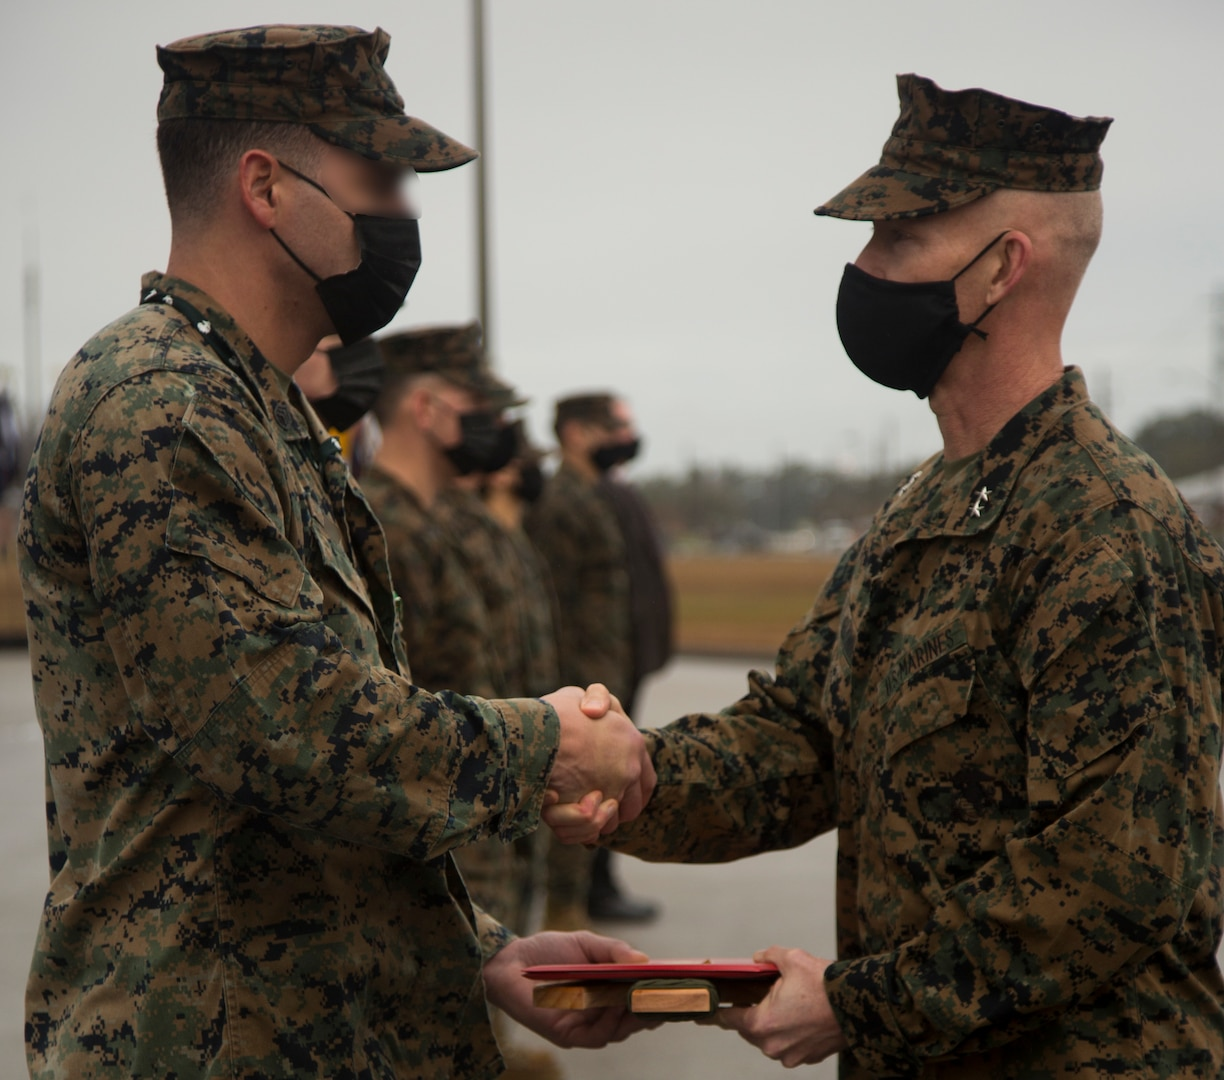 Personnel with Marine Forces Special Operations Command are awarded for their accomplishments during a ceremony at Camp Lejeune, N.C., Feb. 22, 2021. On Feb. 24, 2006, the Marine Corps combined several of its specialized and uniquely trained units, gave them a name and a commander and directed them to become pioneers in a new chapter of Marine Corps history. (U.S. Marine Corps photo by Sgt Jesula Jeanlouis)